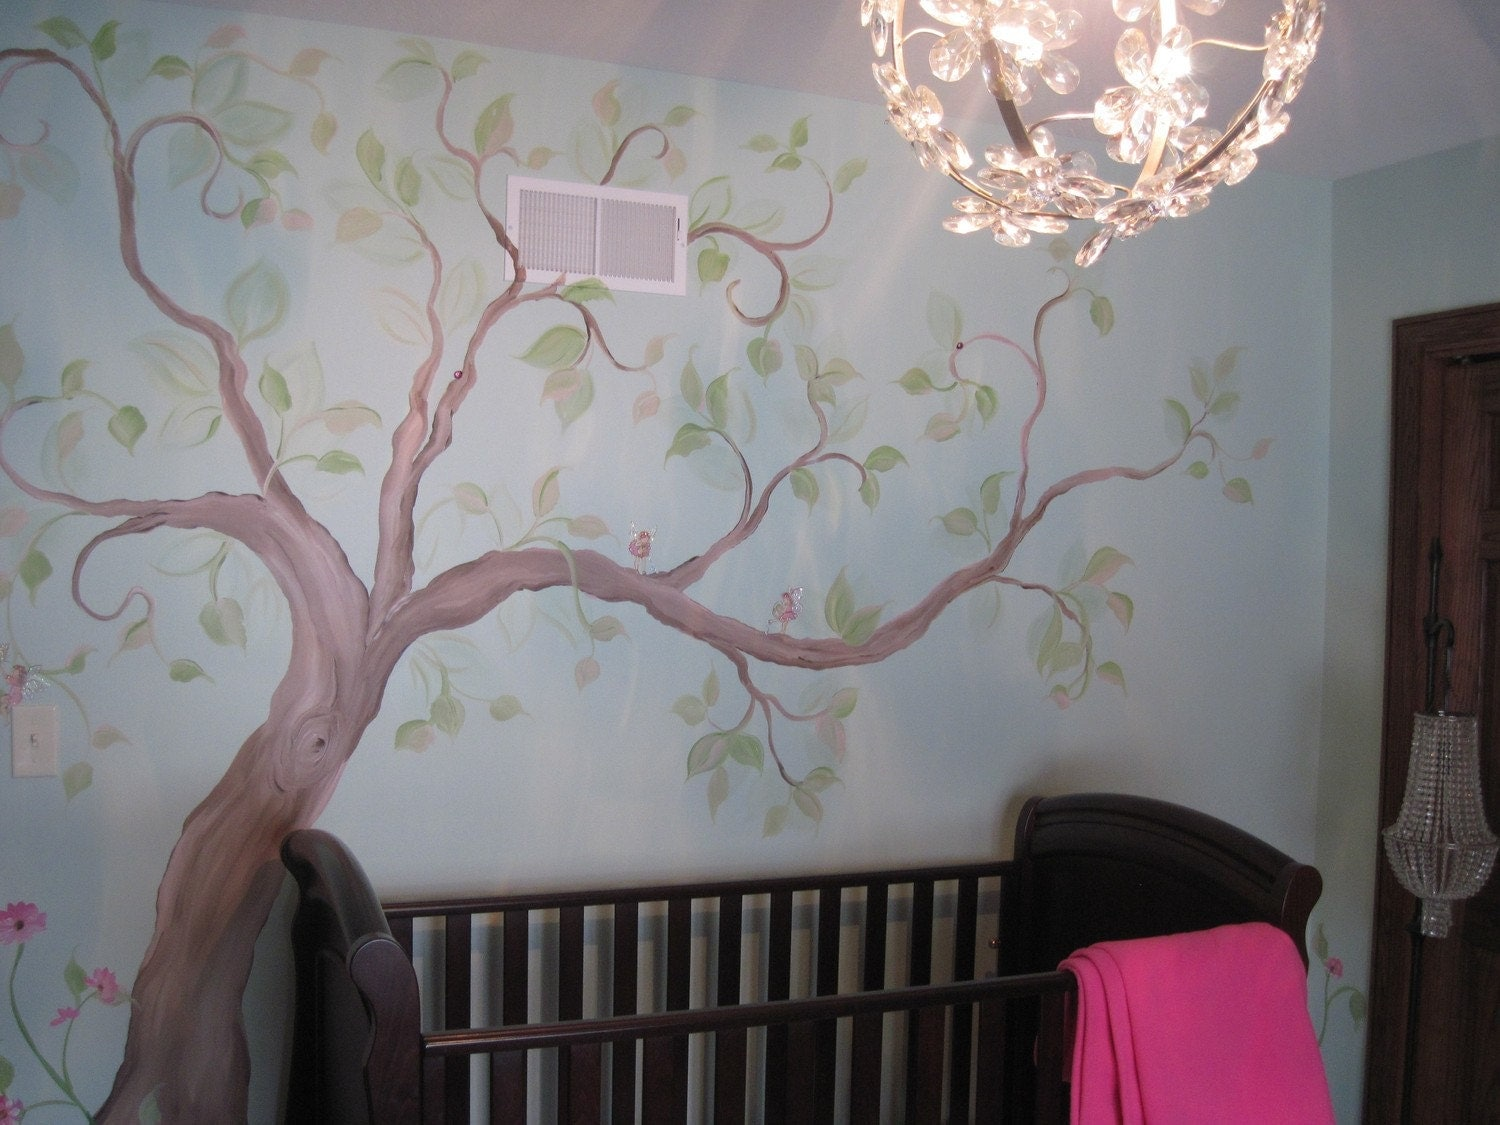 Estimate for tree mural nursery art hand painted custom for Baby wall mural ideas